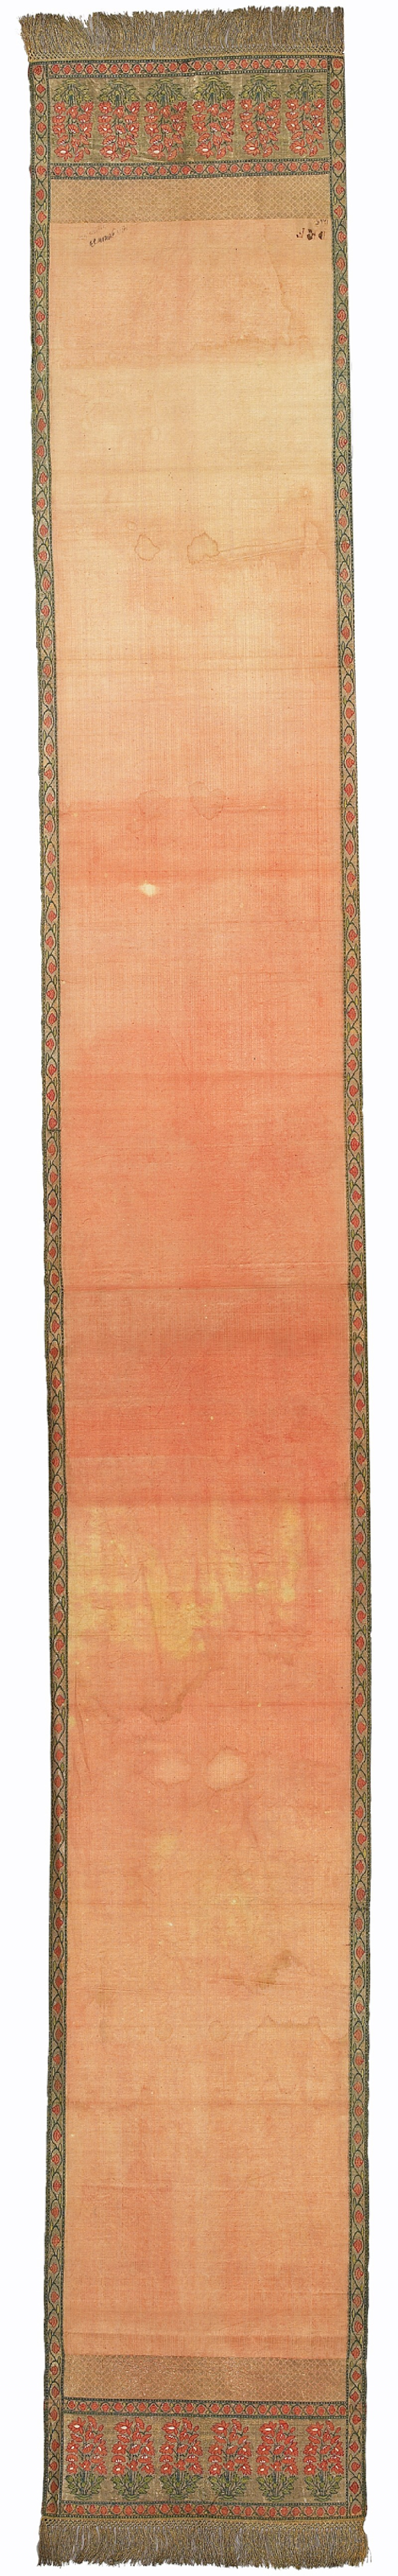 Border of a nobleman's sash